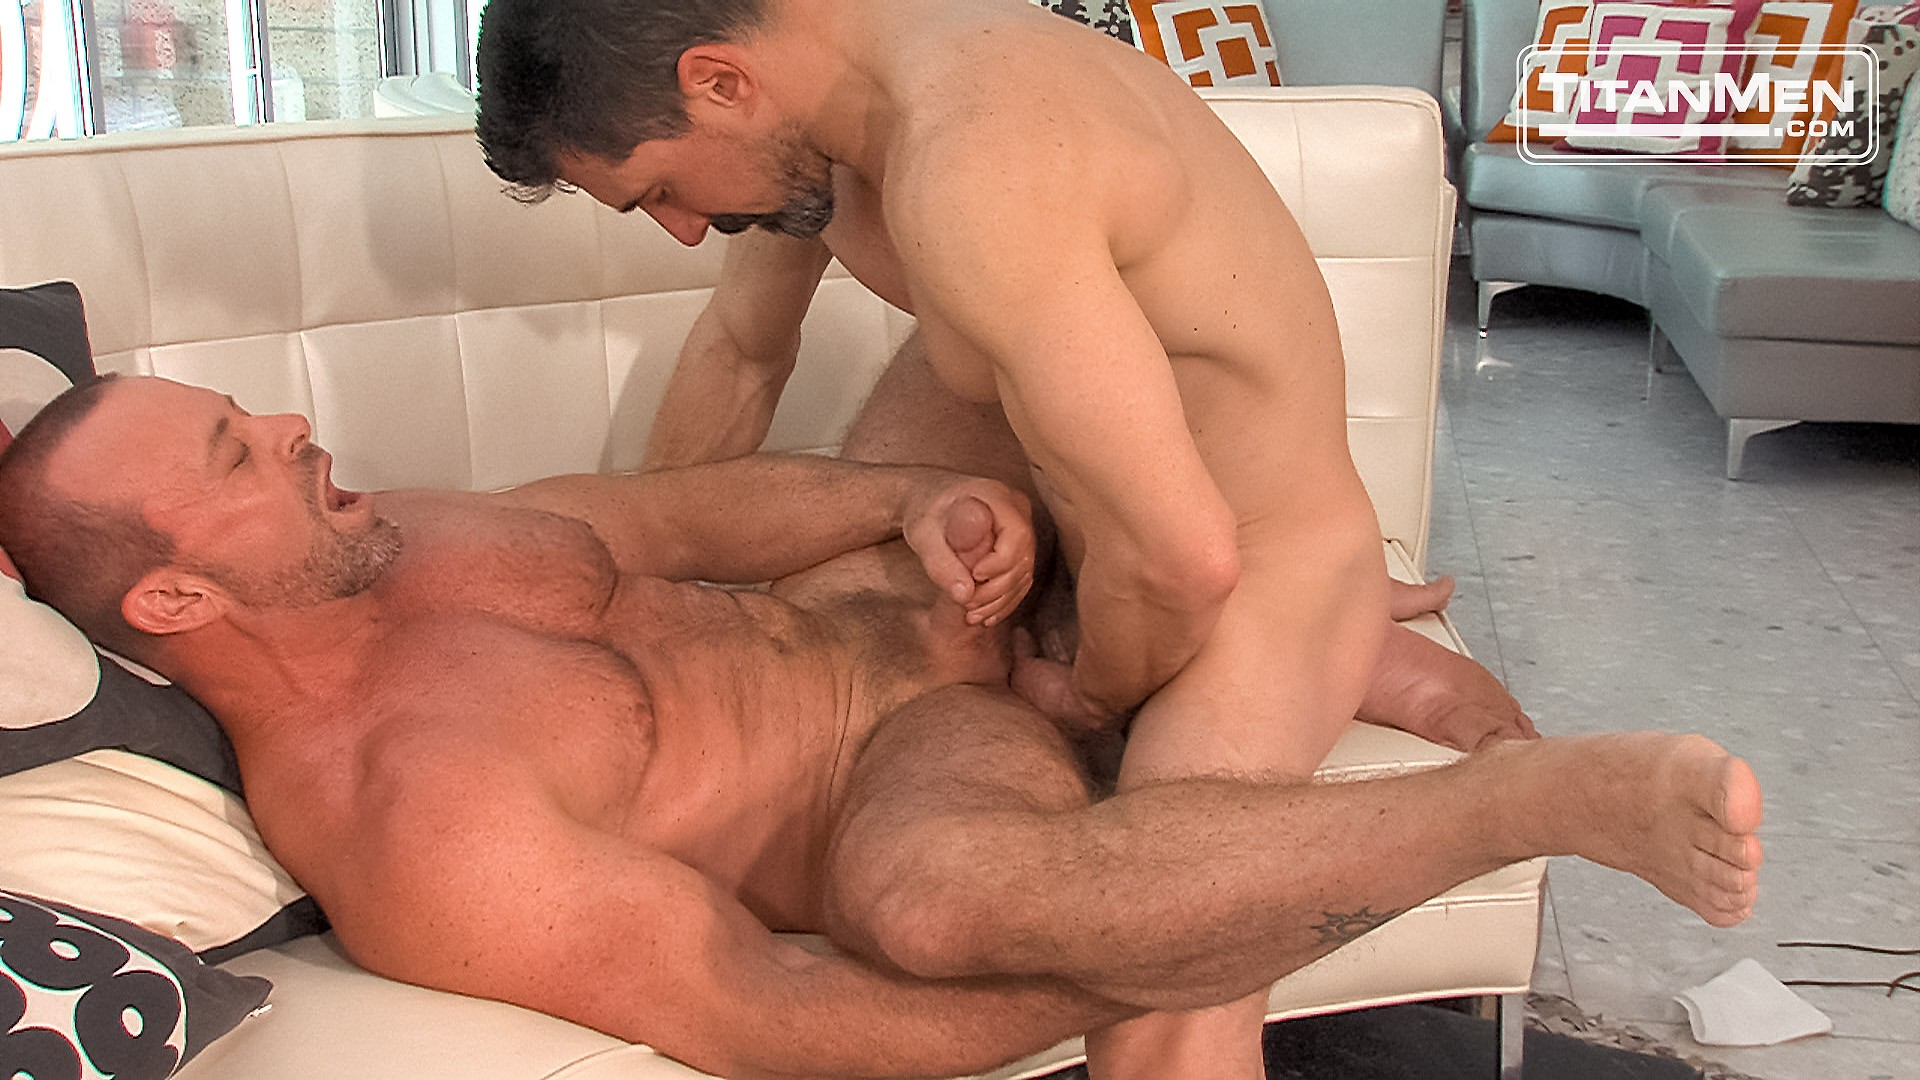 gay real fathers bareback fuck their young real sons homemade gay porn